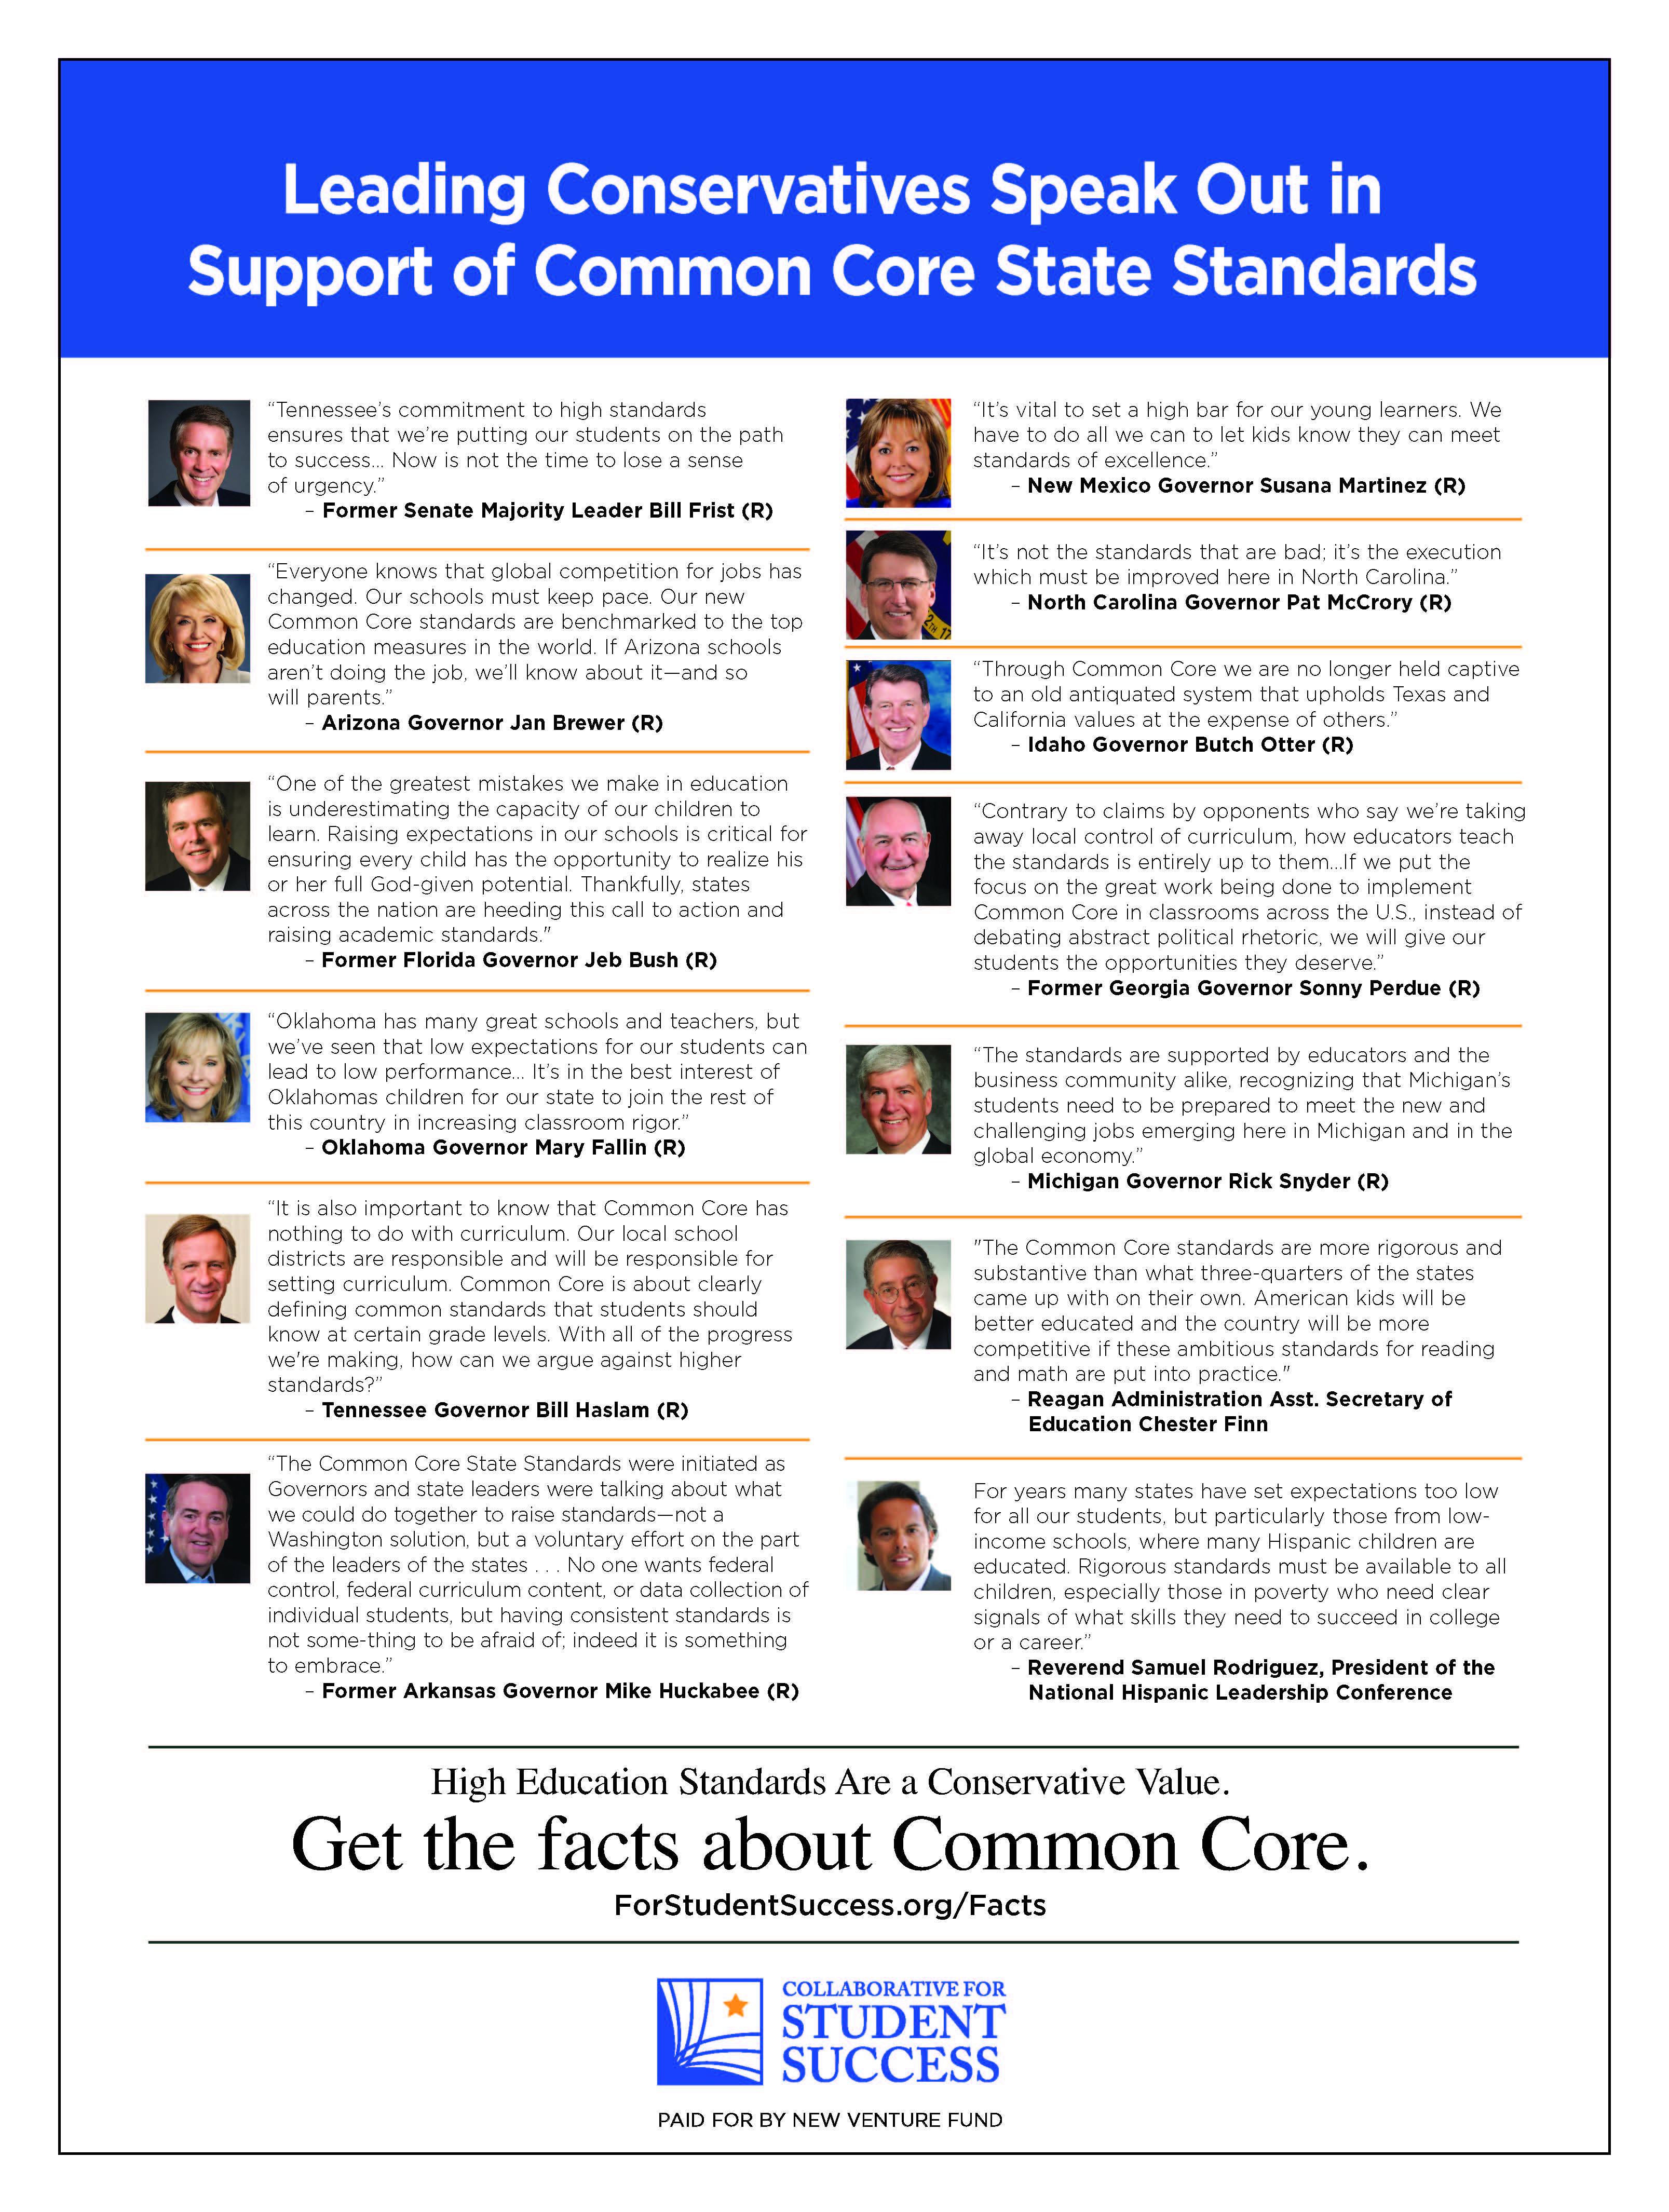 Leading Conservatives Speak Out in Support of Common Core State Standards